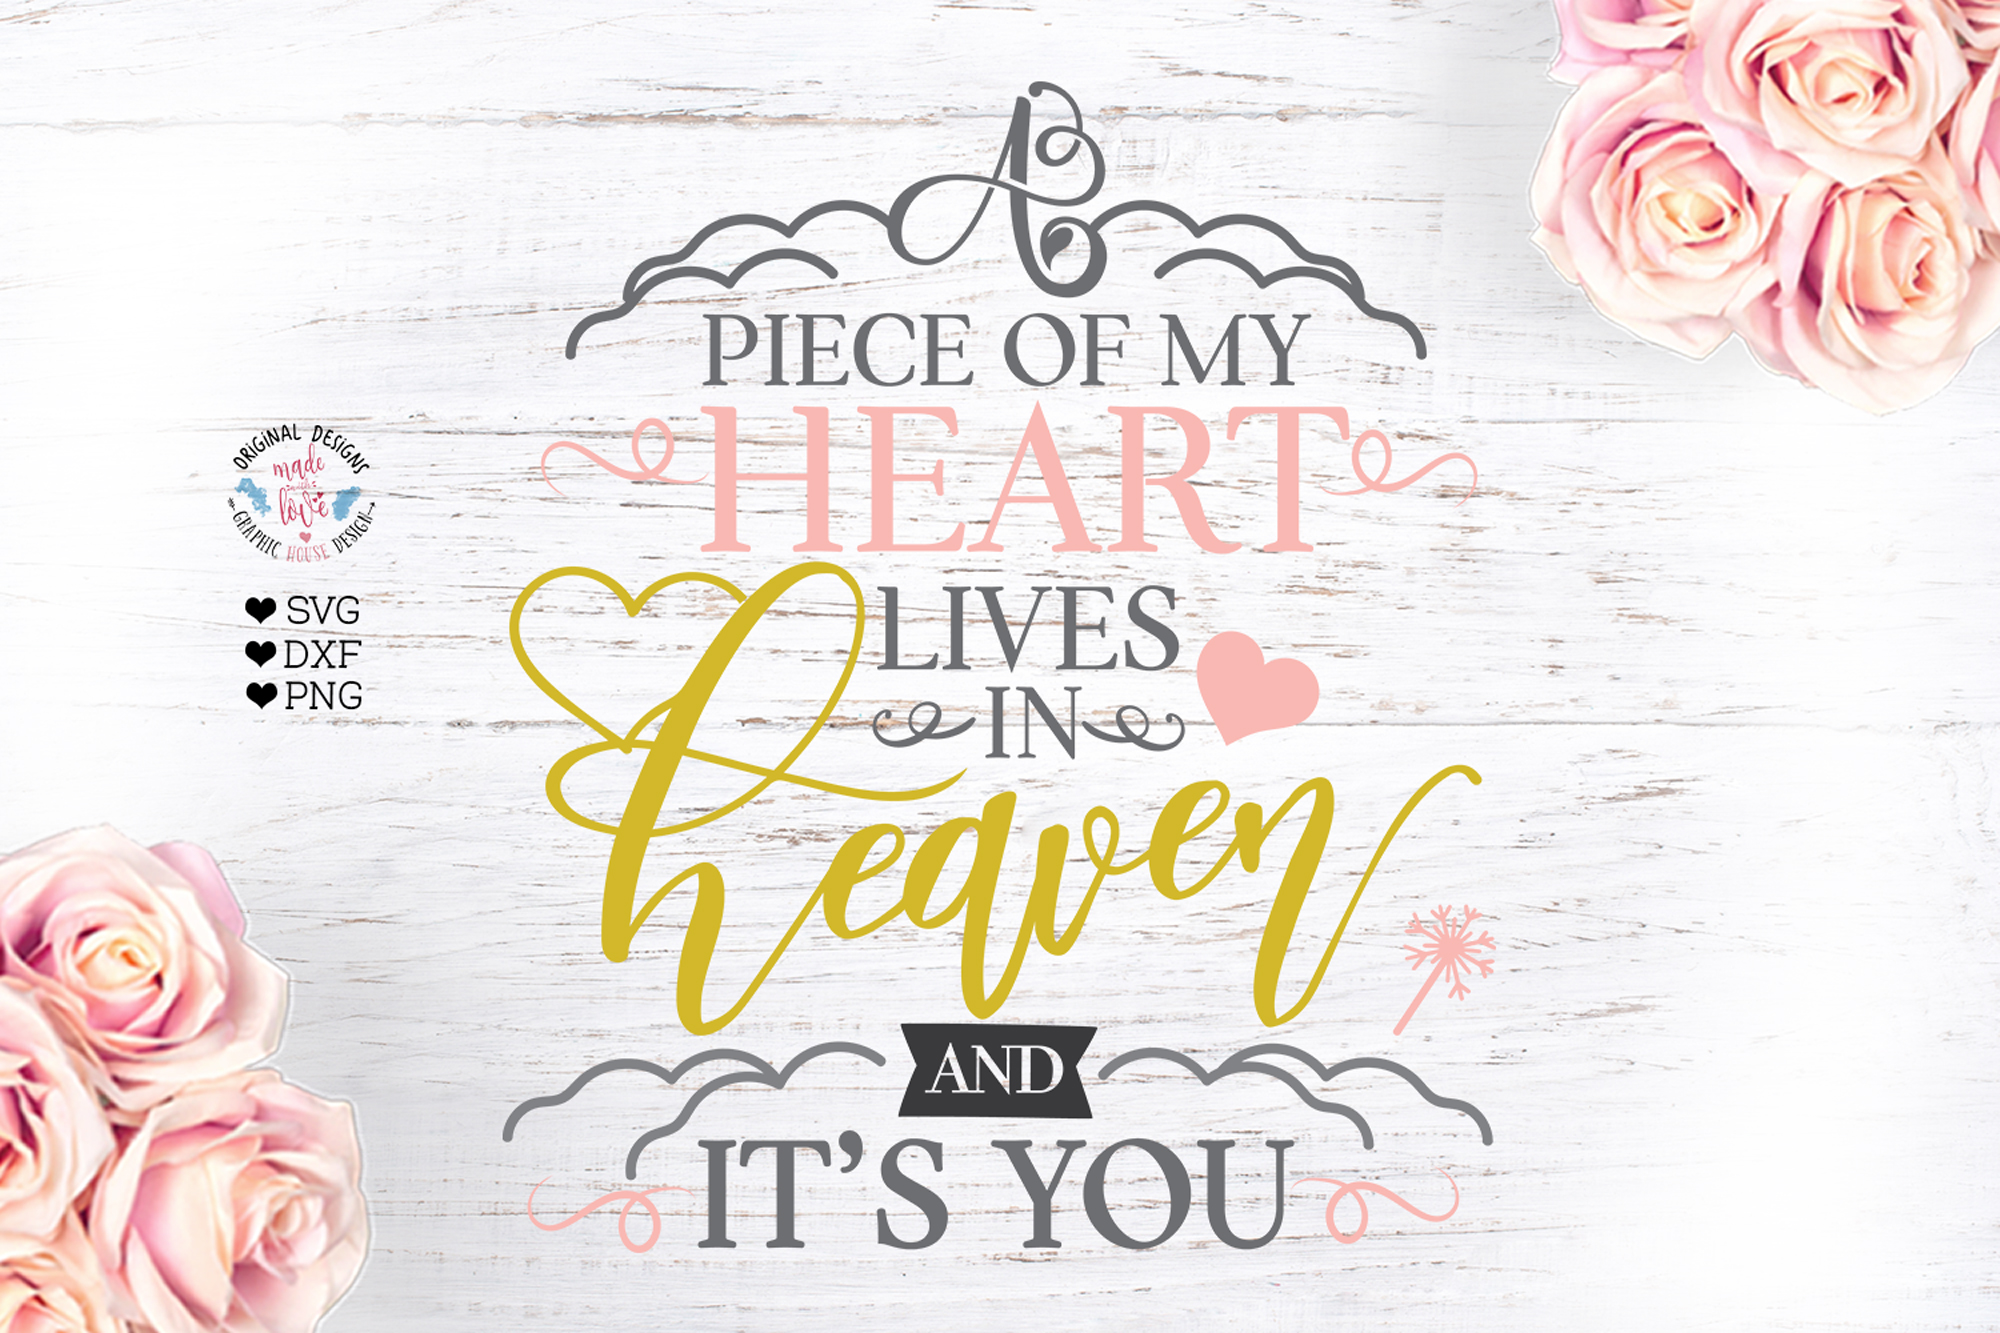 Piece of My Heart lives in Heaven Memorial Cut File example image 1